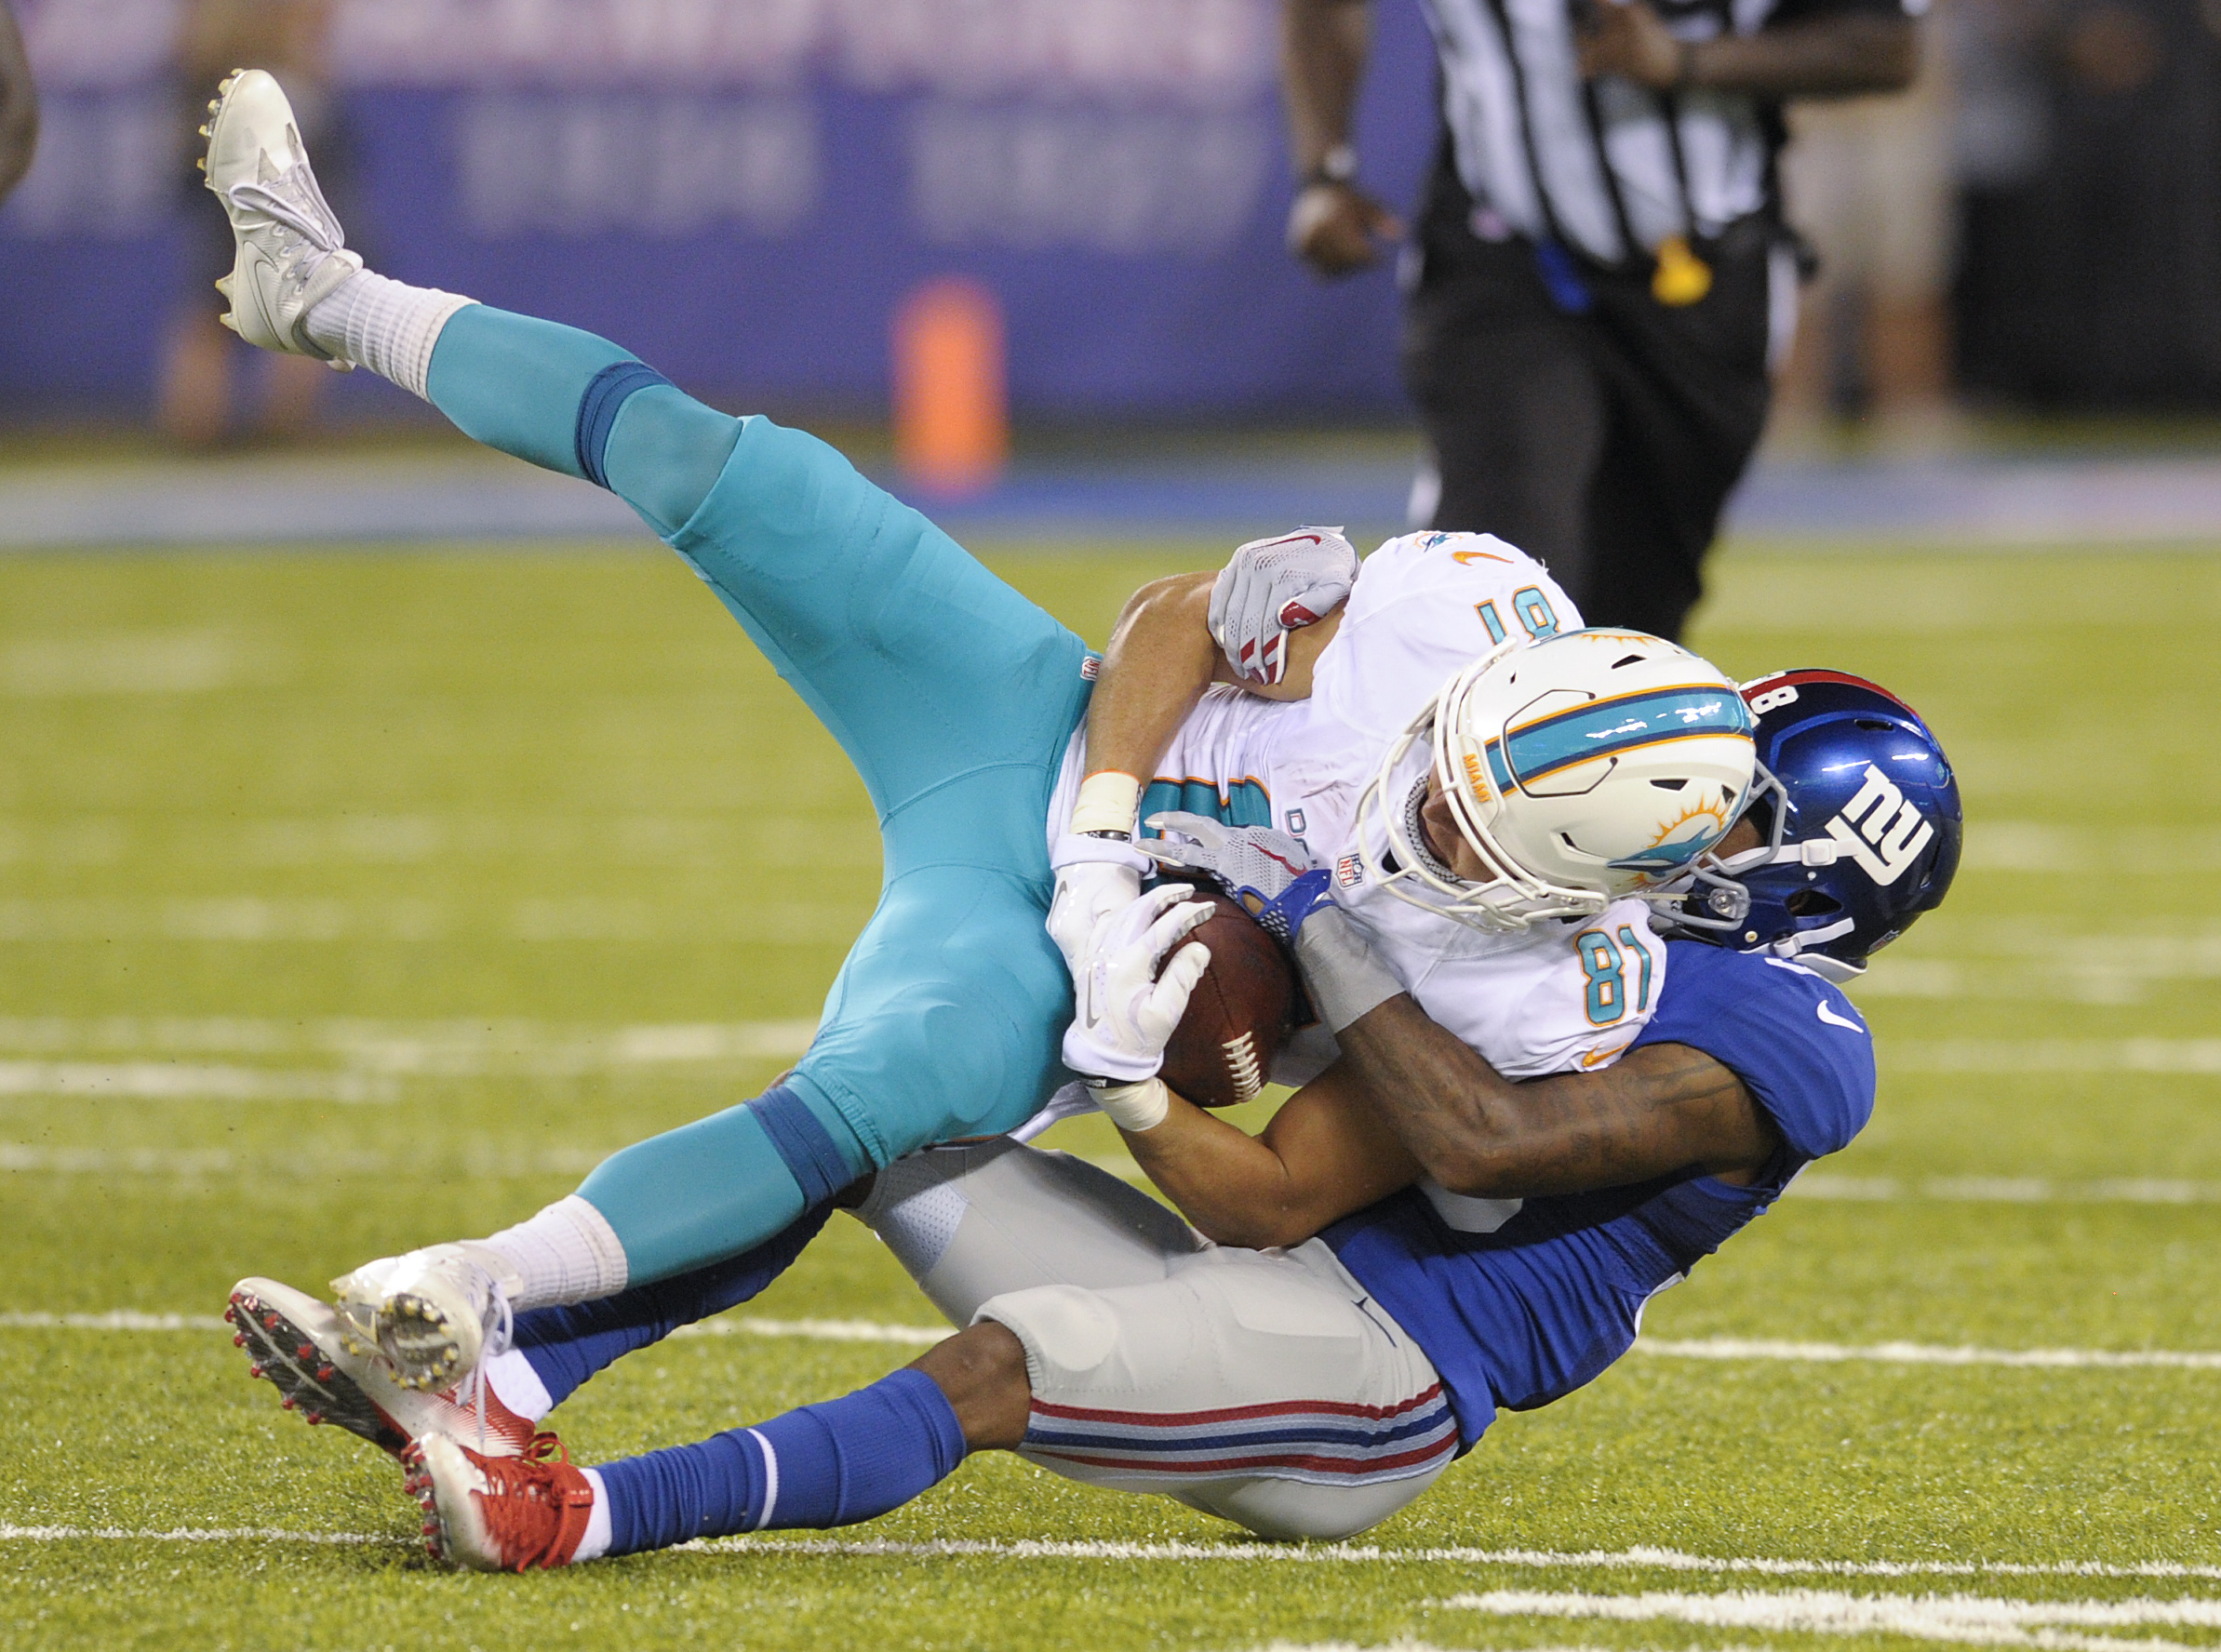 Miami Dolphins wide receiver A.J. Cruz (81) is brought down by New York Giants defensive back Donte Deayon (38) during the second quarter of a preseason NFL football game, Friday, Aug. 12, 2016, in East Rutherford, N.J. (AP Photo/Bill Kostroun)